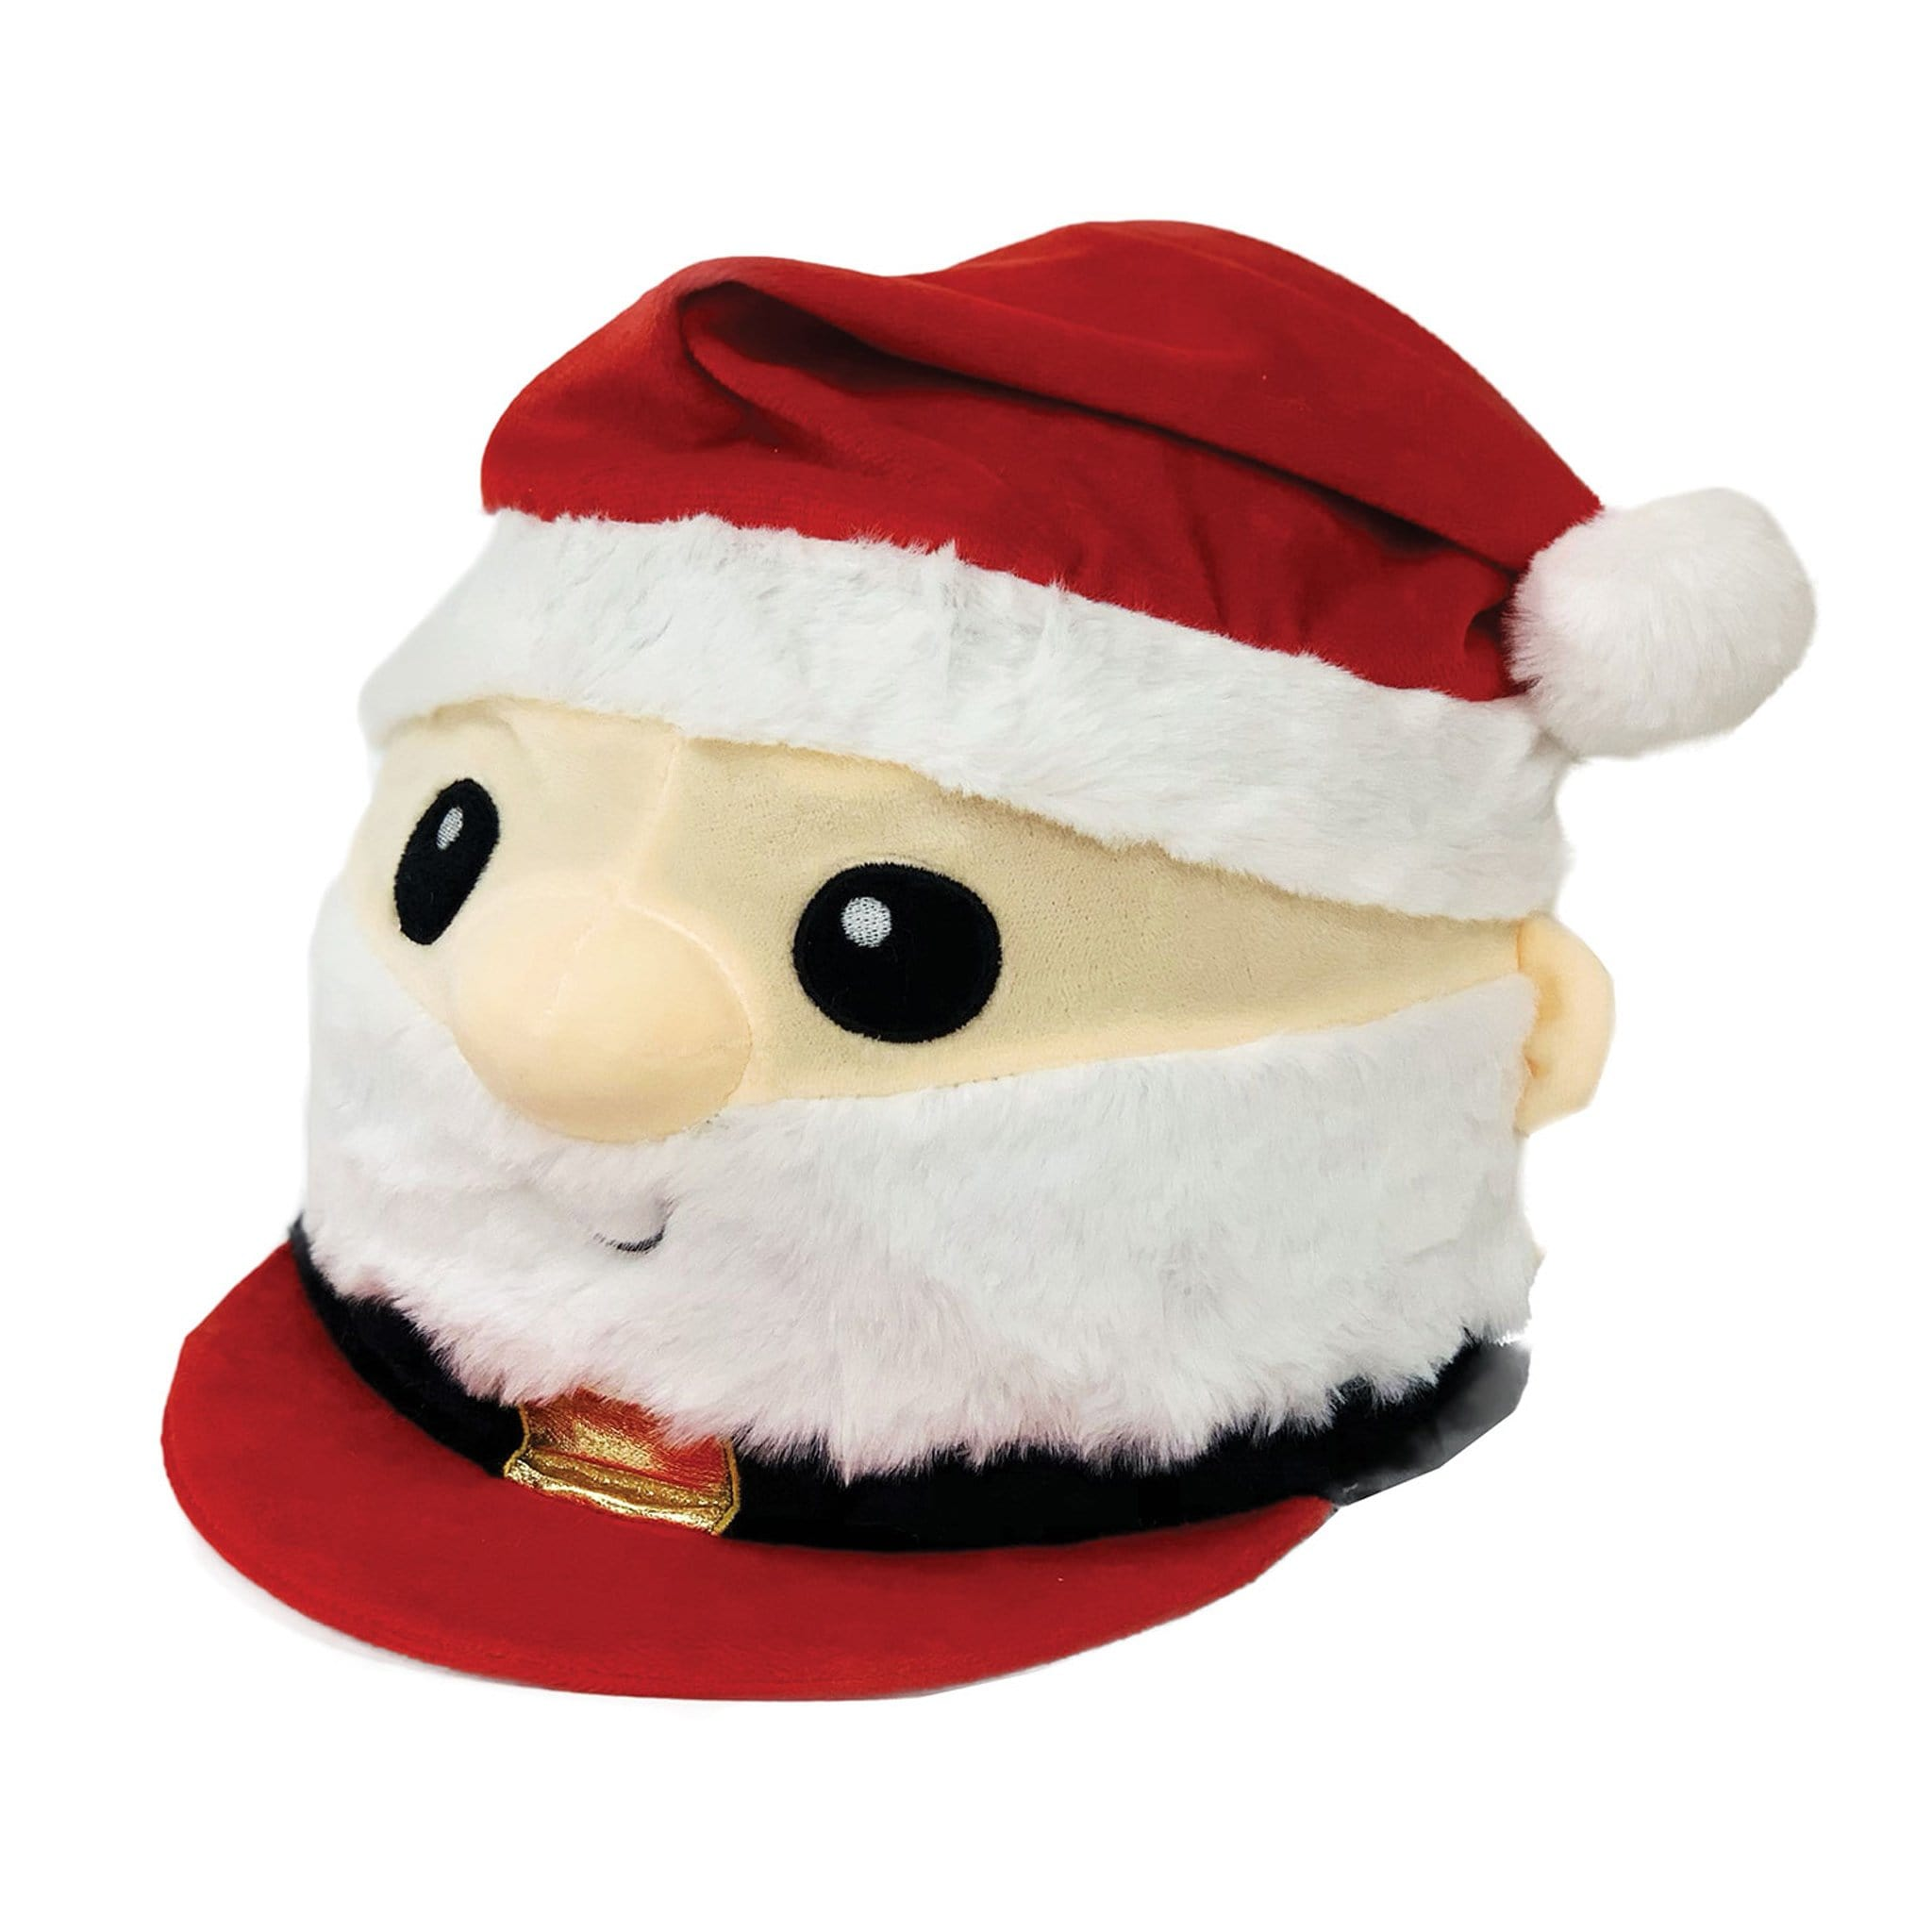 Equetech Children's Father Christmas Hat Silk FXS Red Novelty Christmas Hat Cover